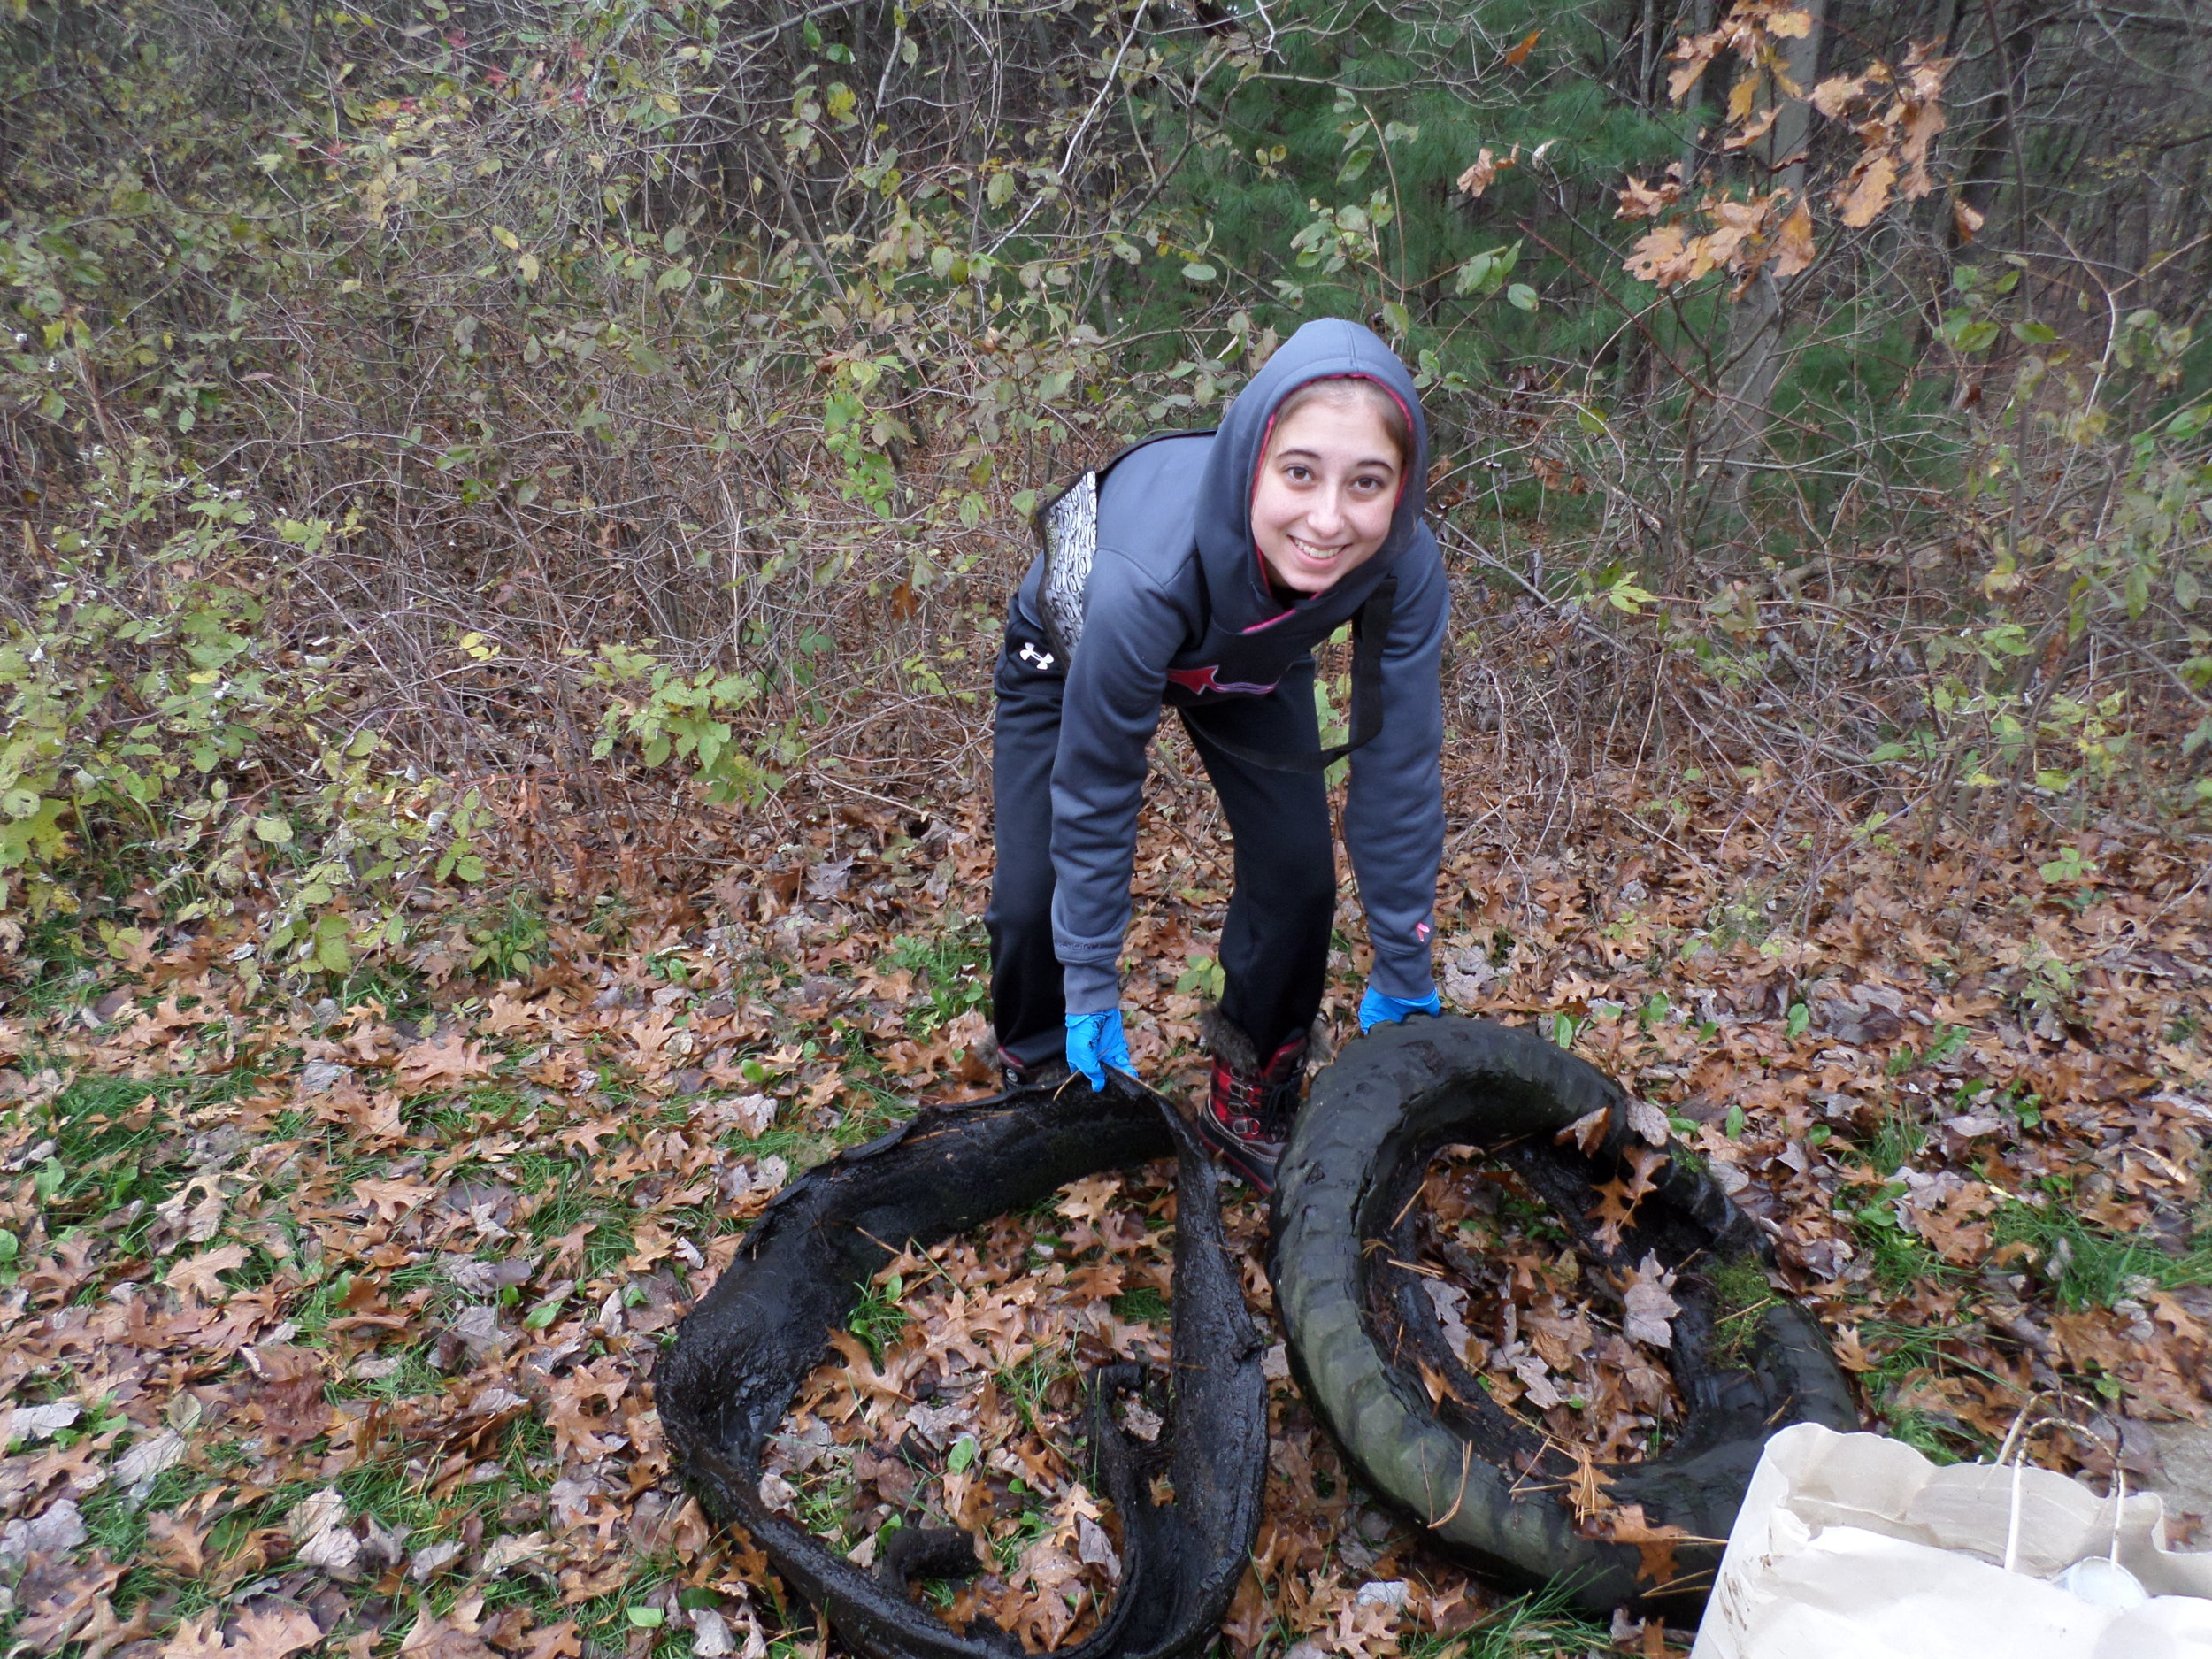 Alaina Steinmetz organized a cleanup in her Wisconsin community. No matter where you live, you can help care for the ocean by cleaning up trash.